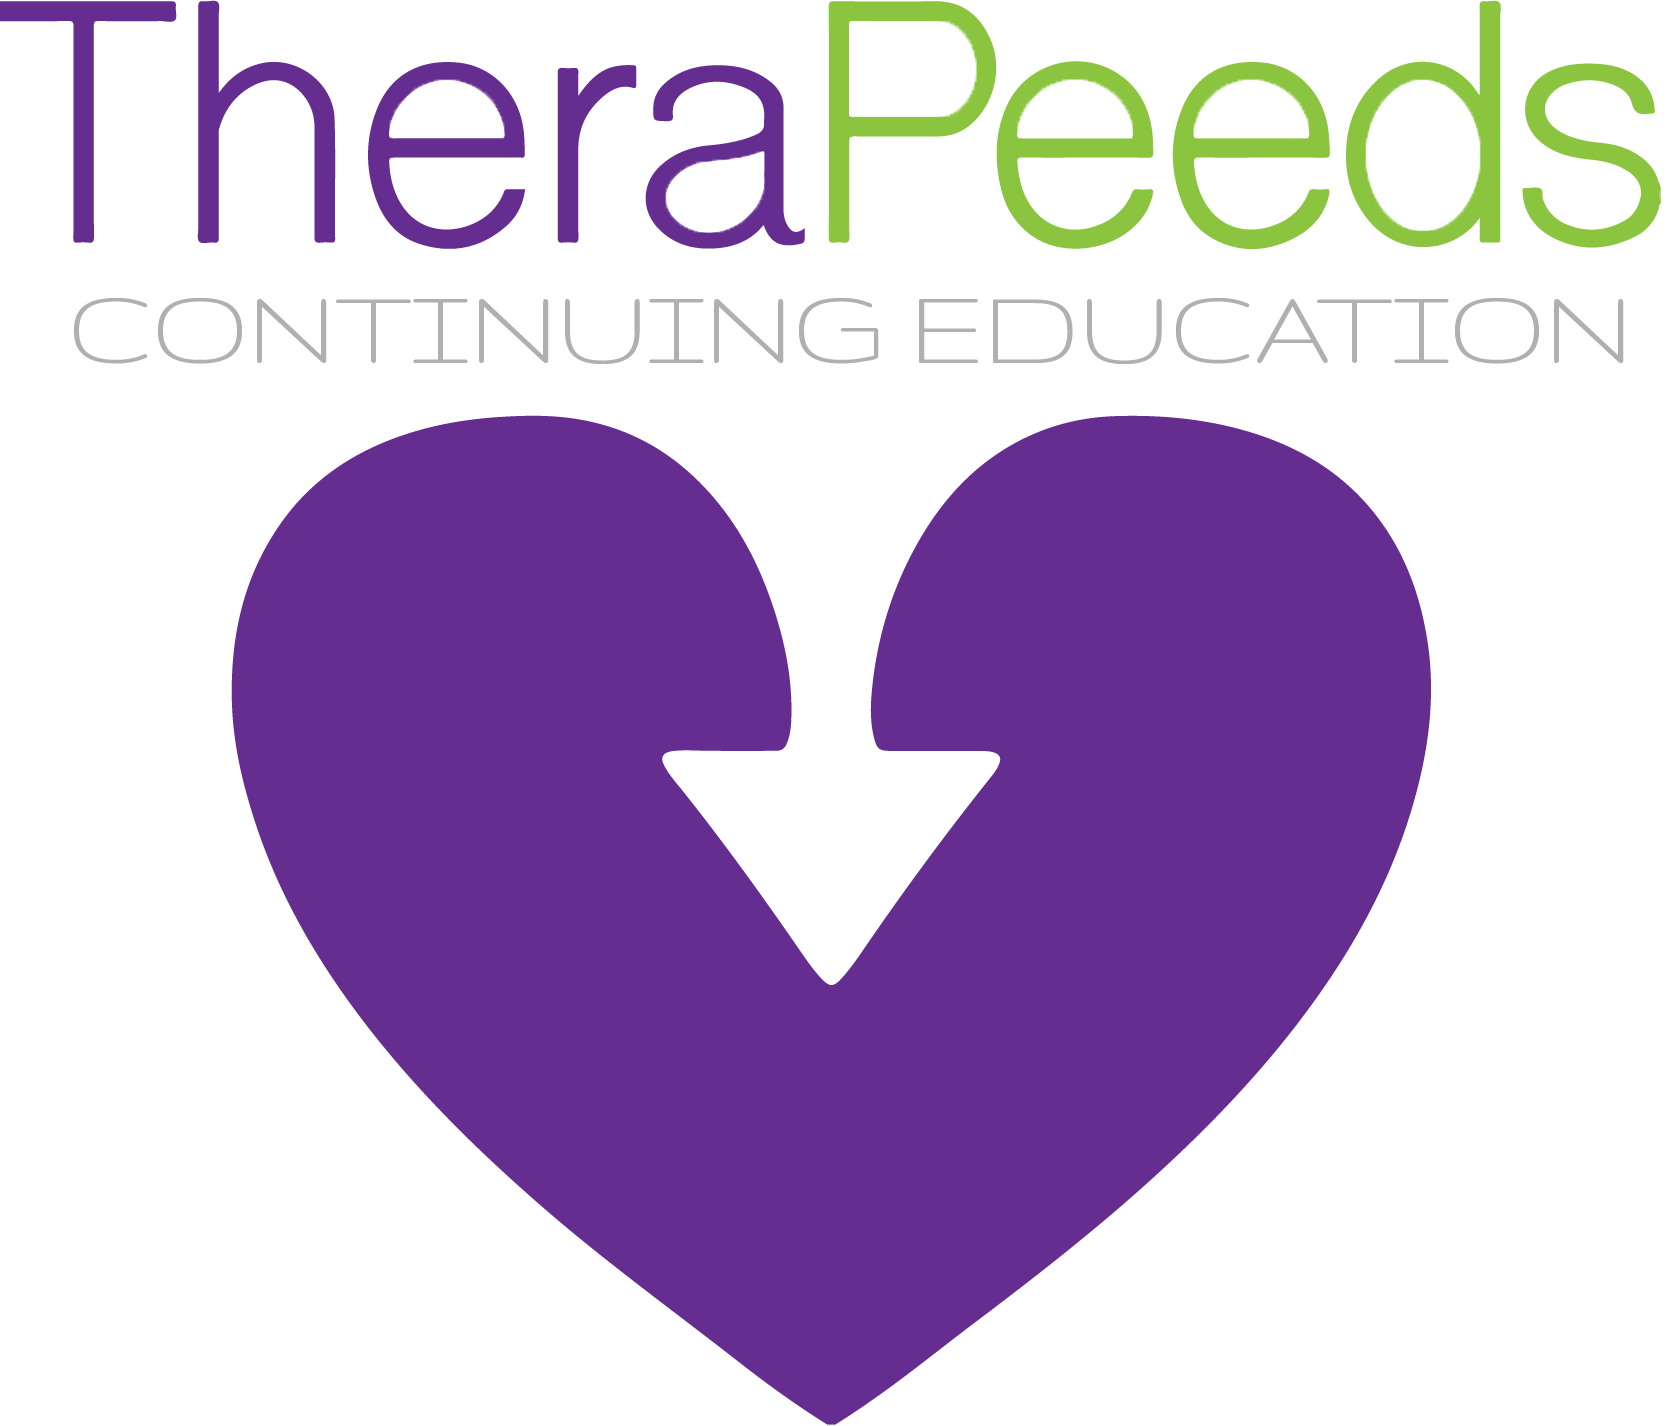 TheraPeeds Continuing Education